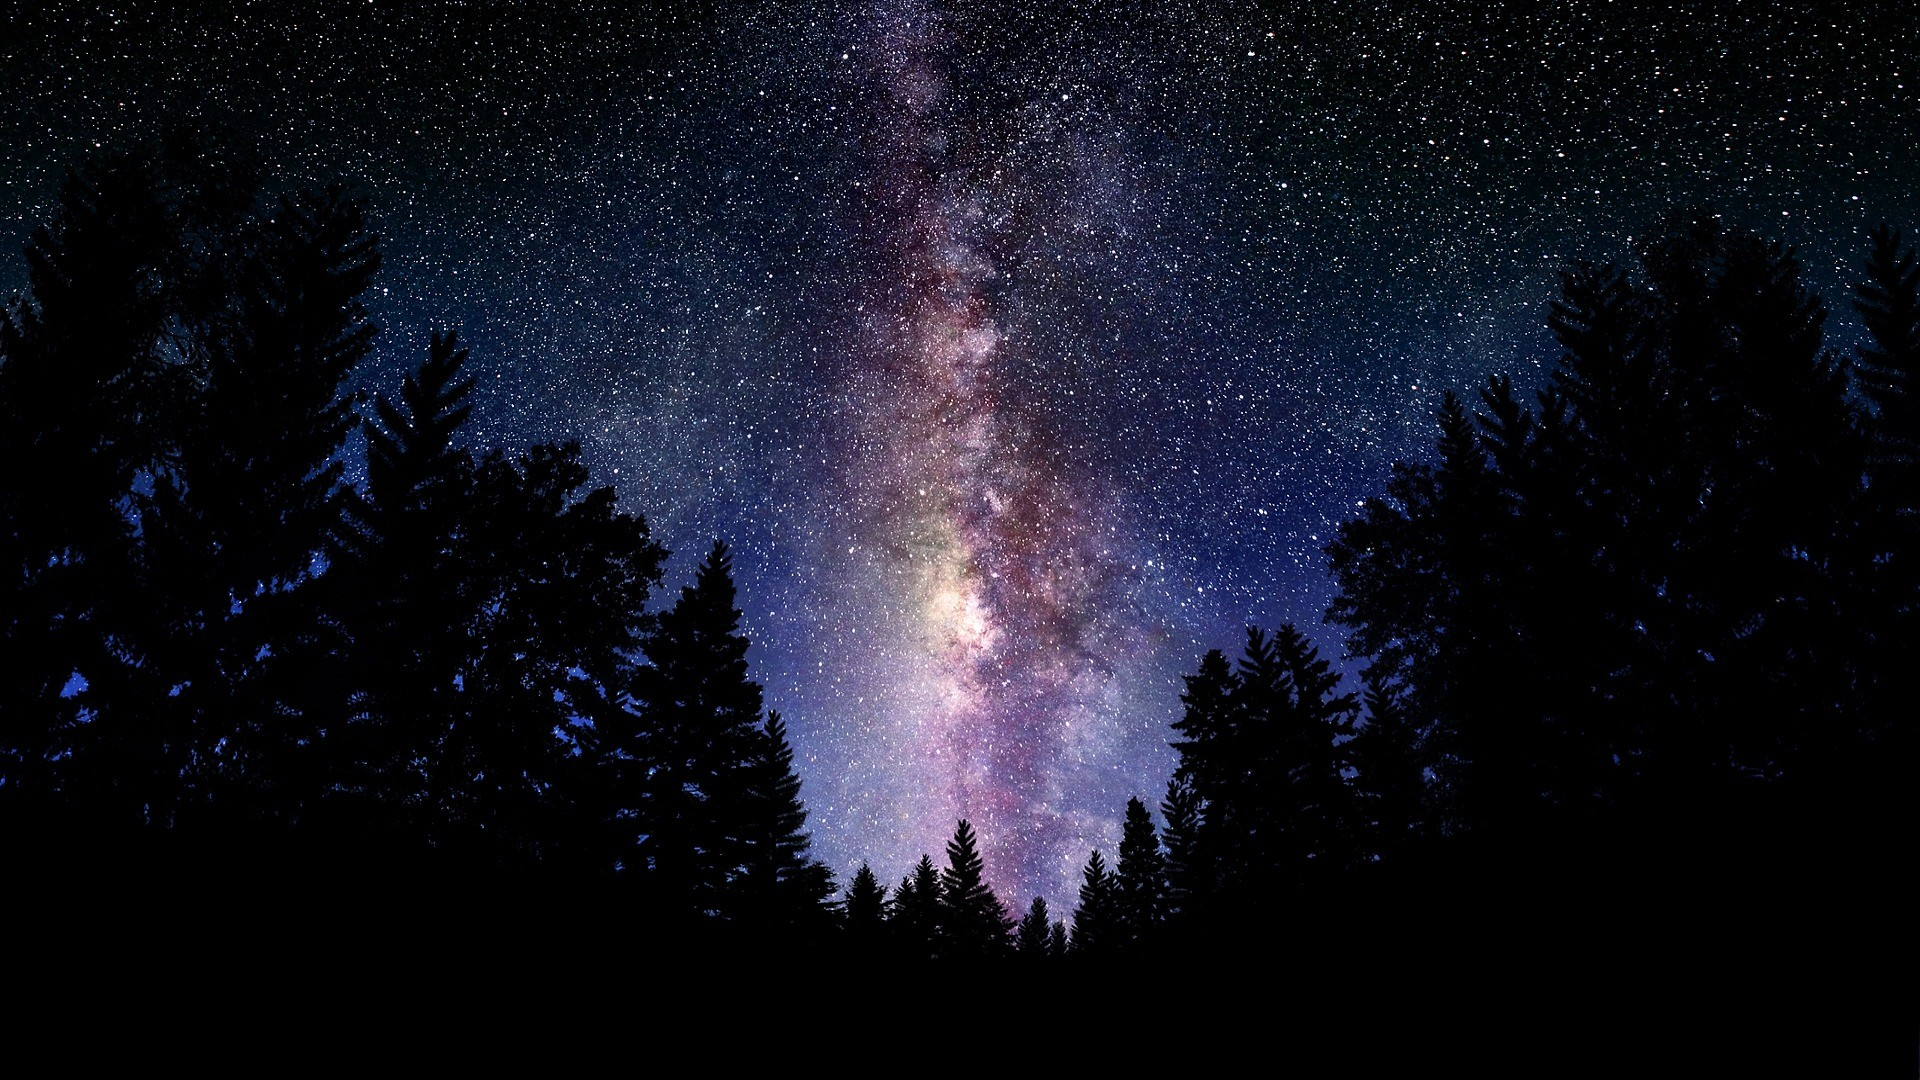 Galaxy HD wallpaper | 1920x1080 | #44000